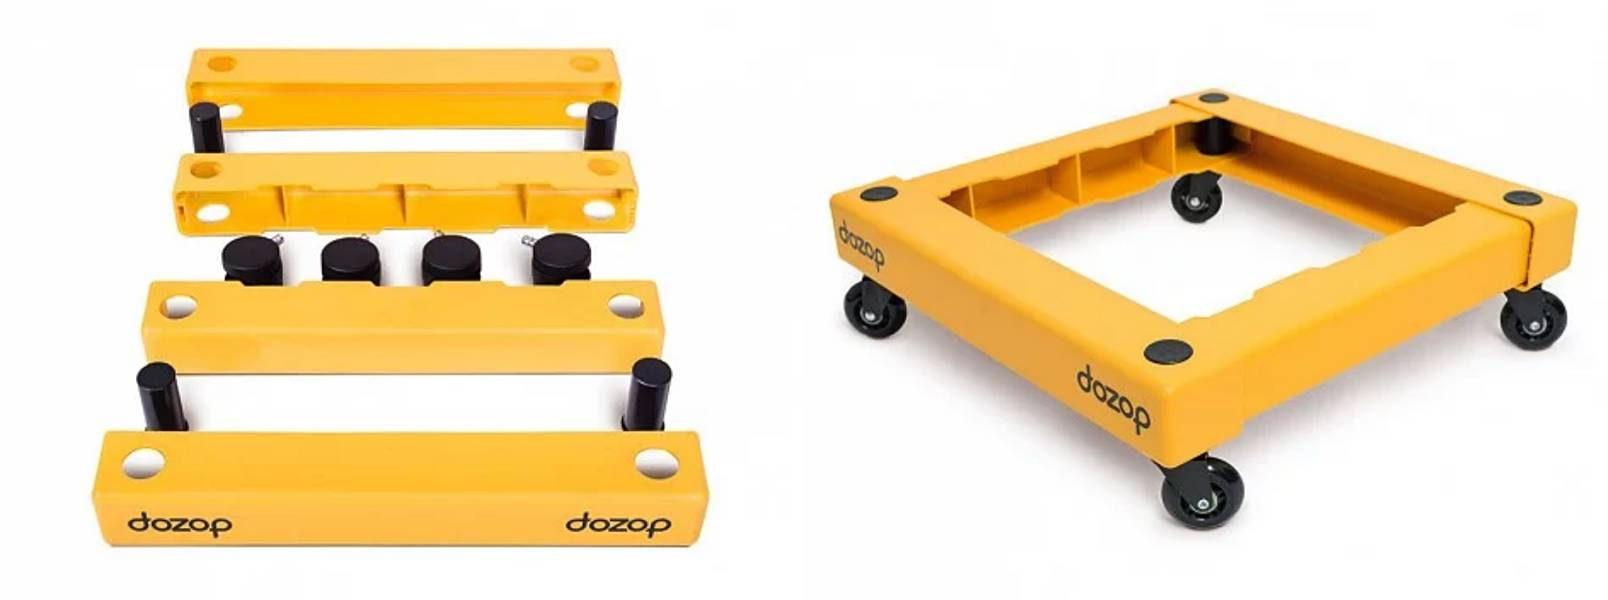 The Dozop Collapsible Dolly Is A Dolly On Demand The